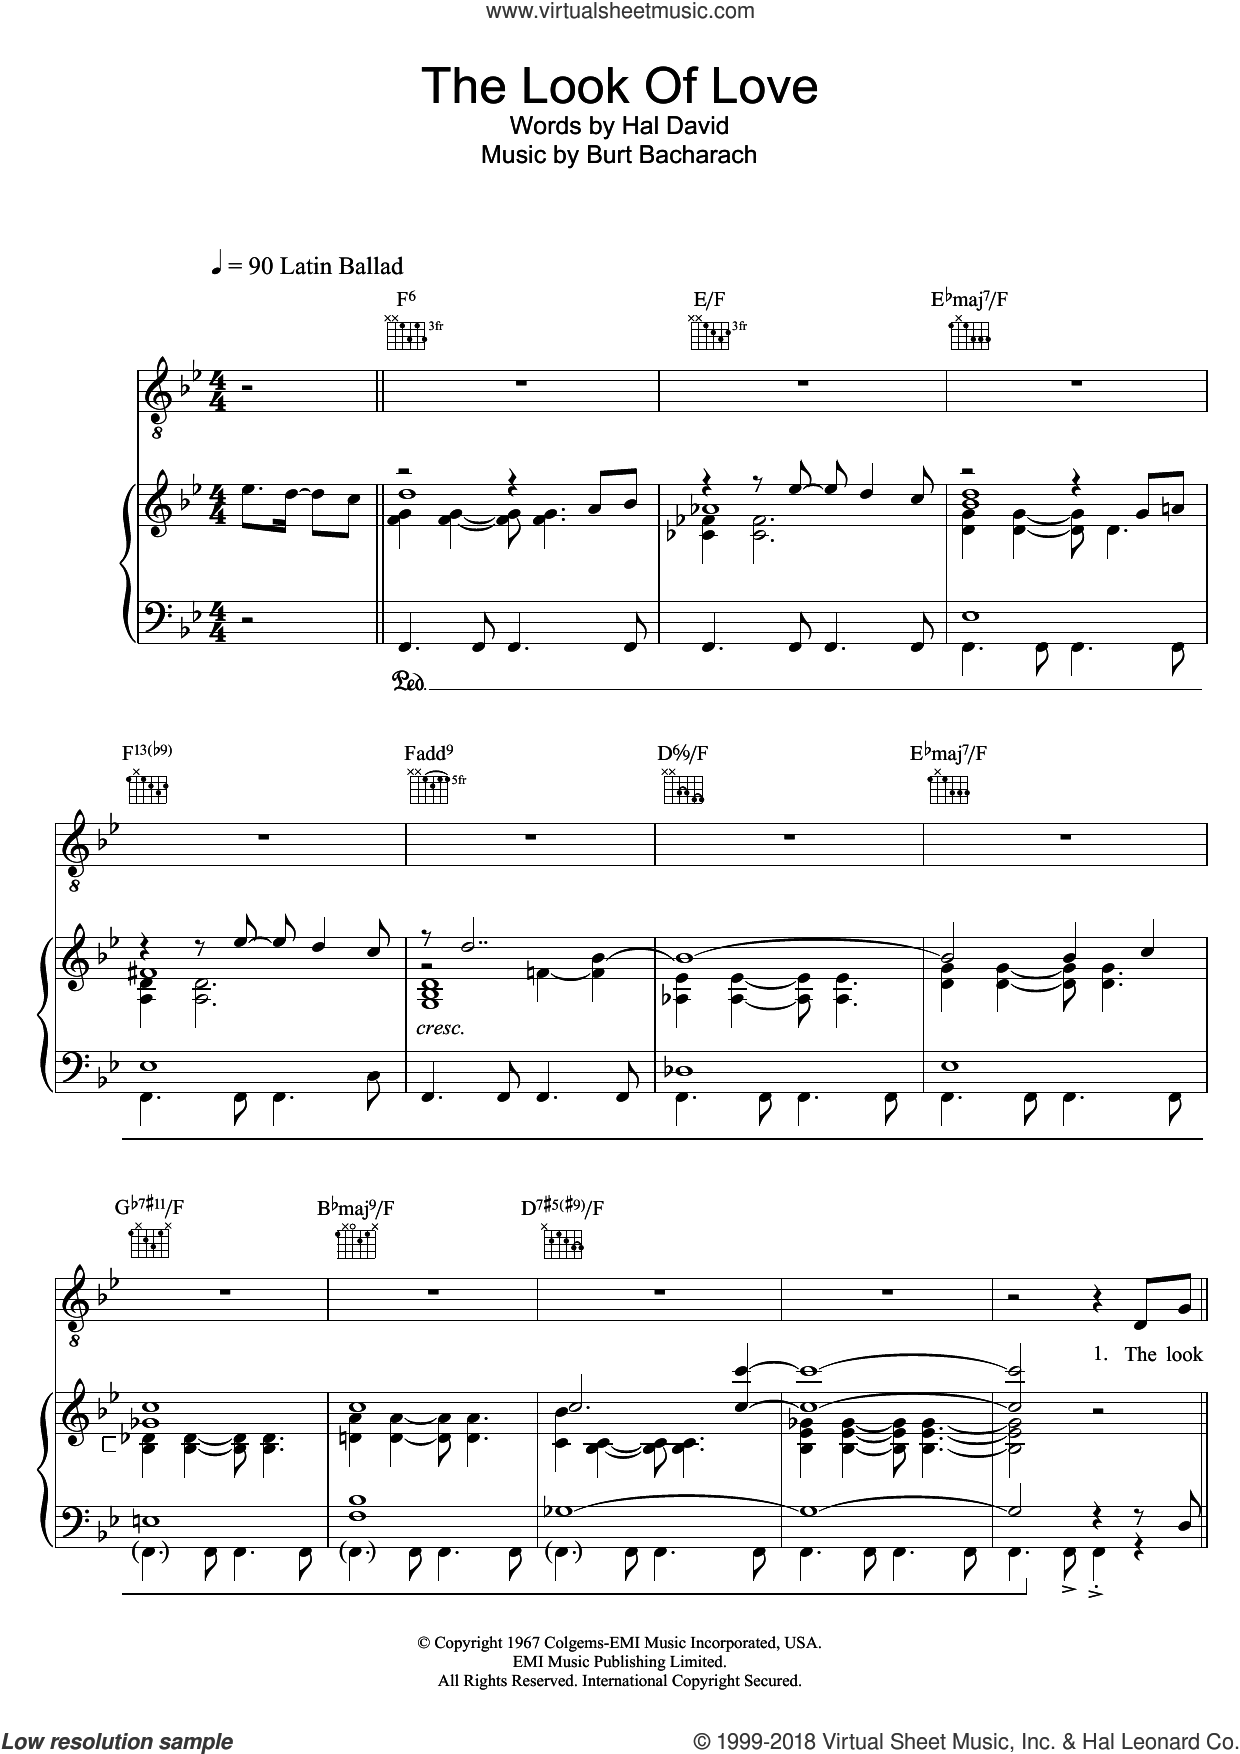 The Look Of Love sheet music for voice, piano or guitar by Hal David